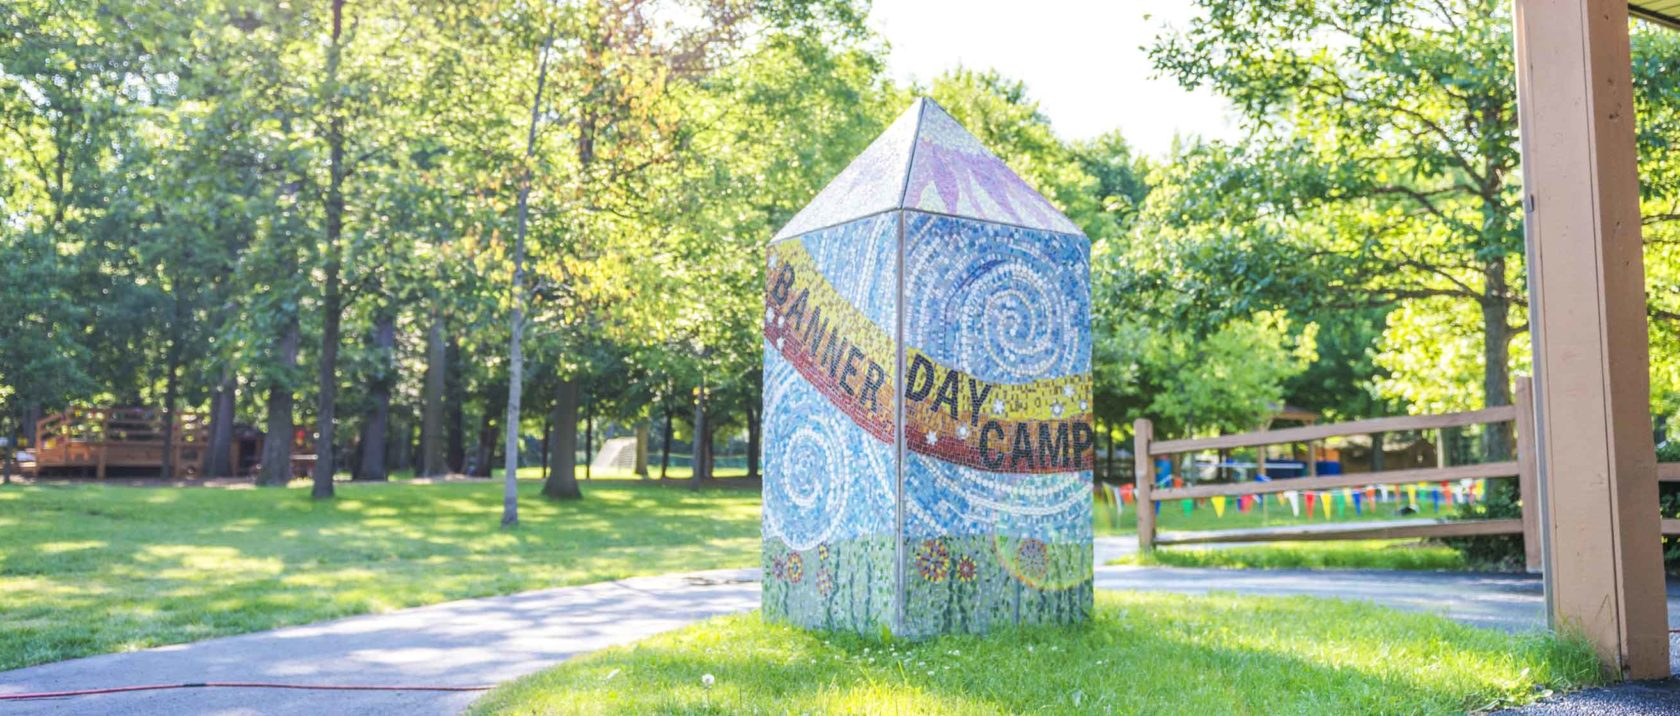 Banner Day Camp mosaic on a pillar in a field